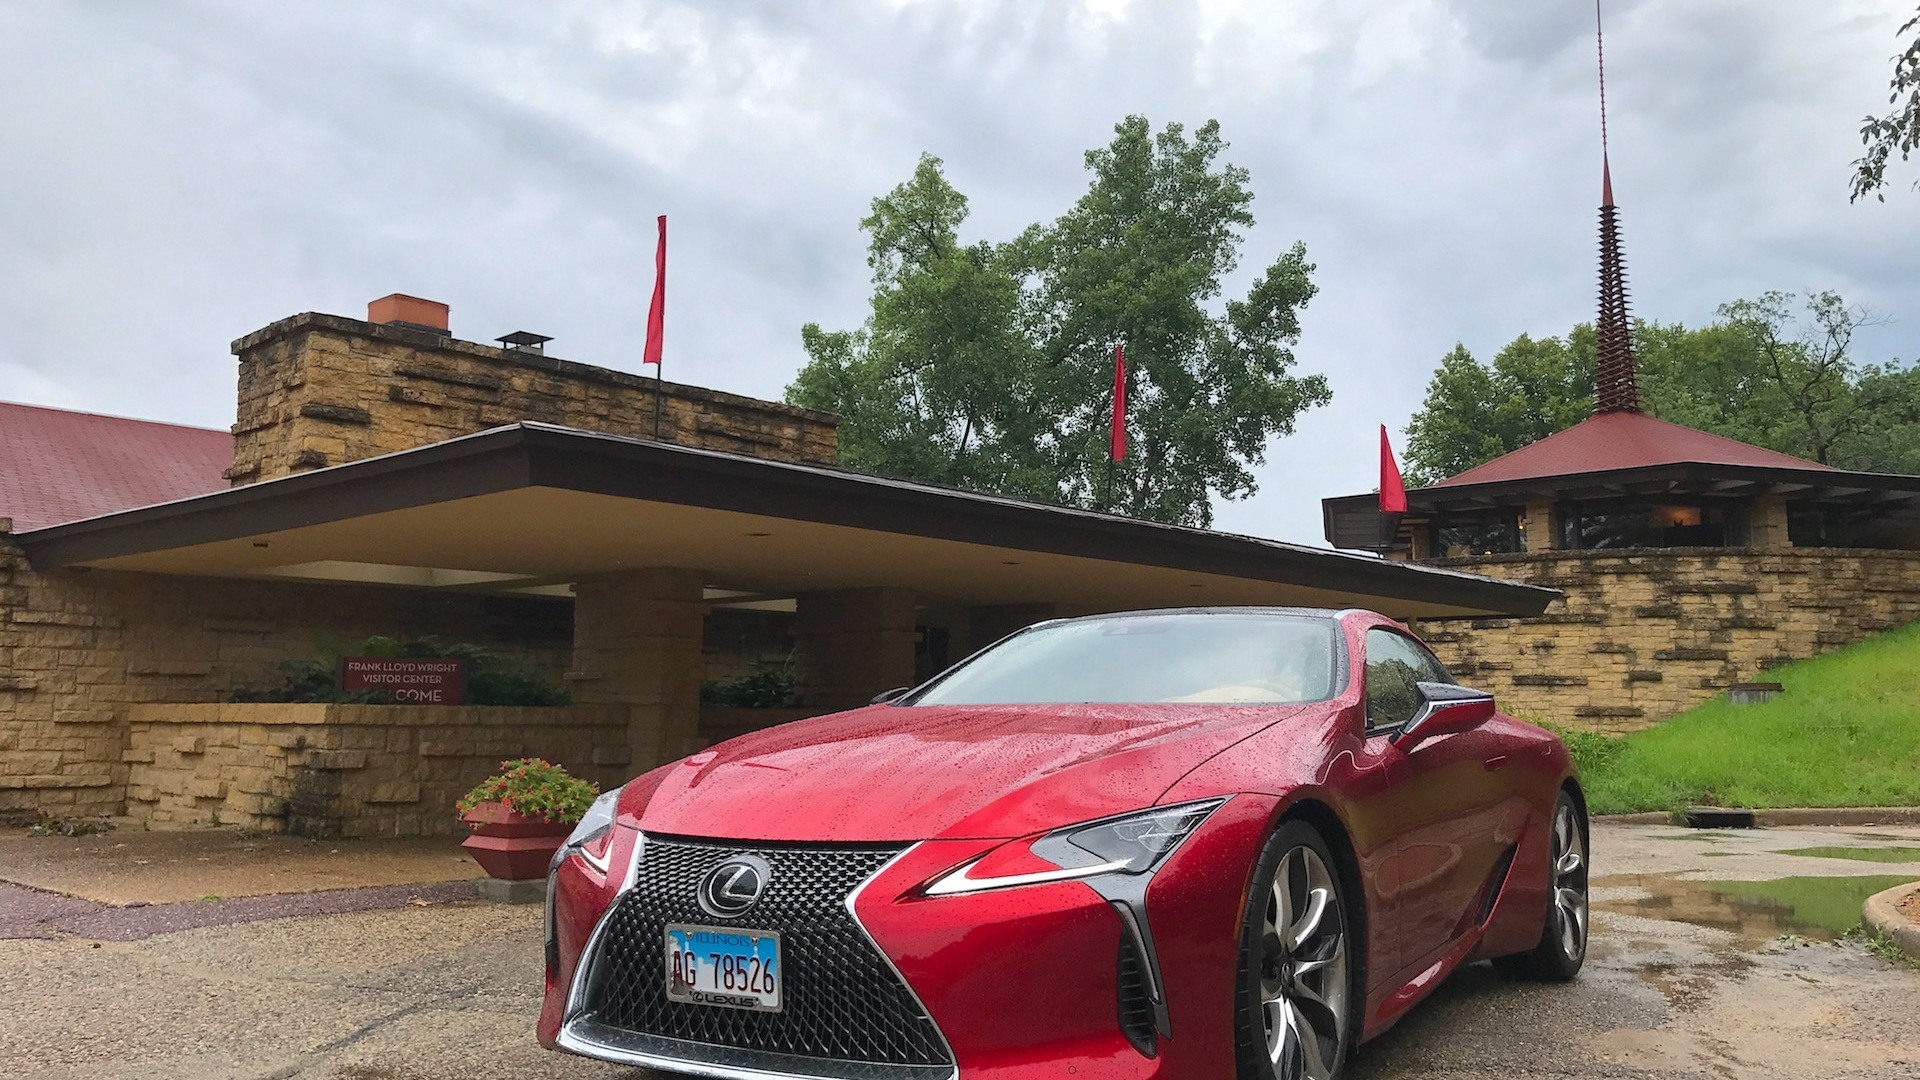 2018 Lexus LC 500 at the Taliesin Visitors Center